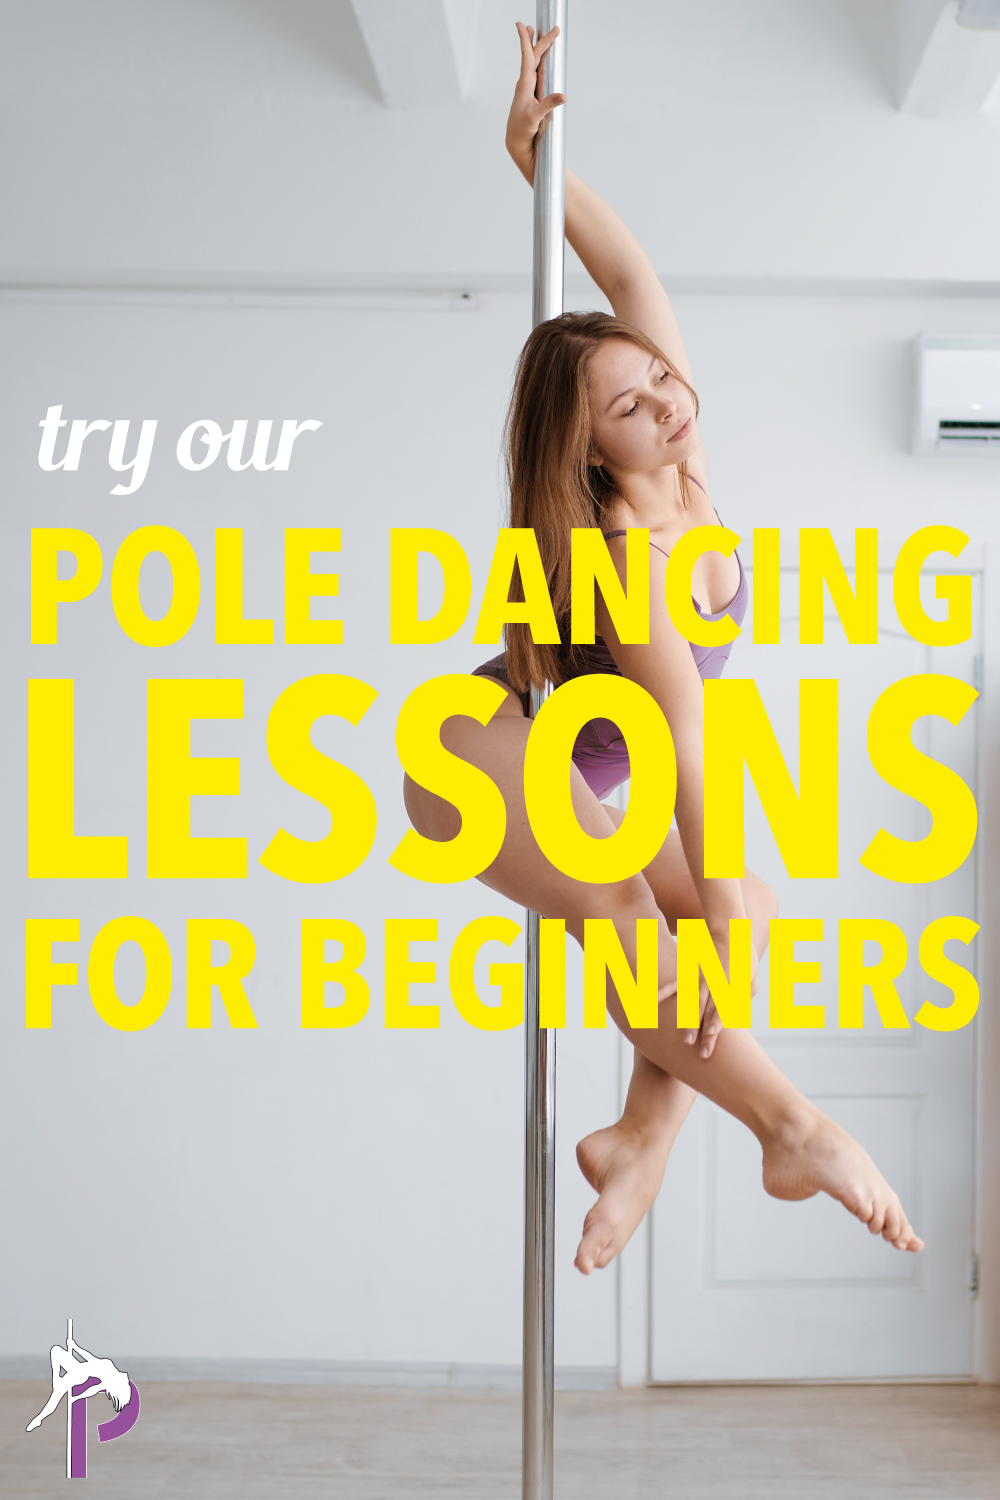 how to get into pole dancing? PFD pole dancing for beginners great to begin pole dancing